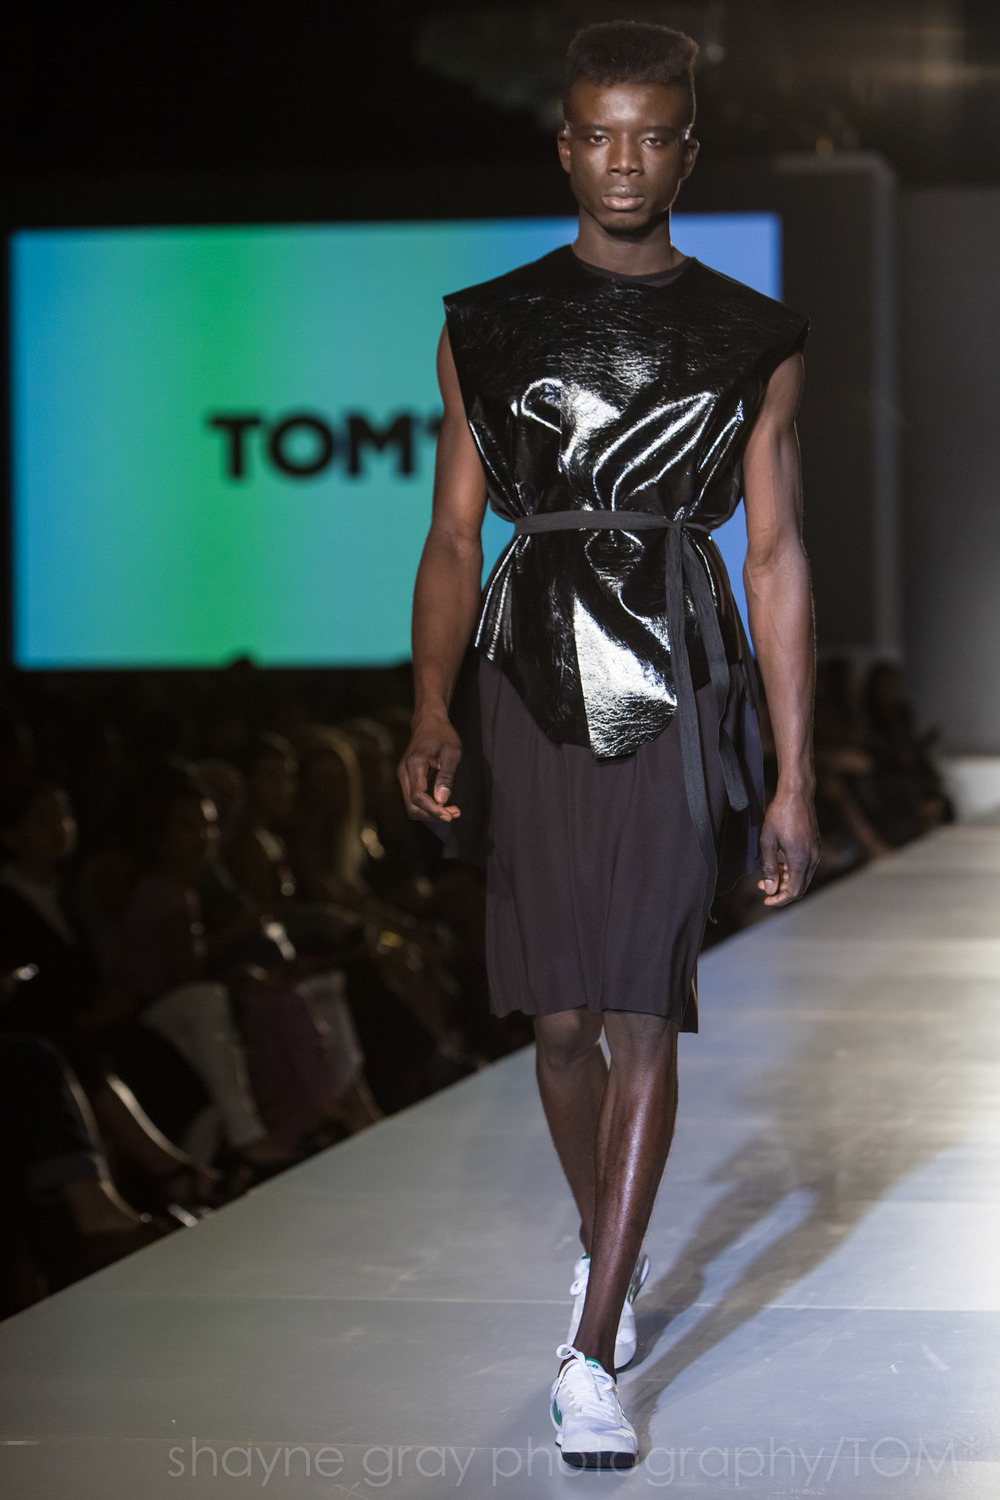 Shayne-Gray-Toronto-men's-fashion_week-TOM-Pedram-Karimi-8907.jpg